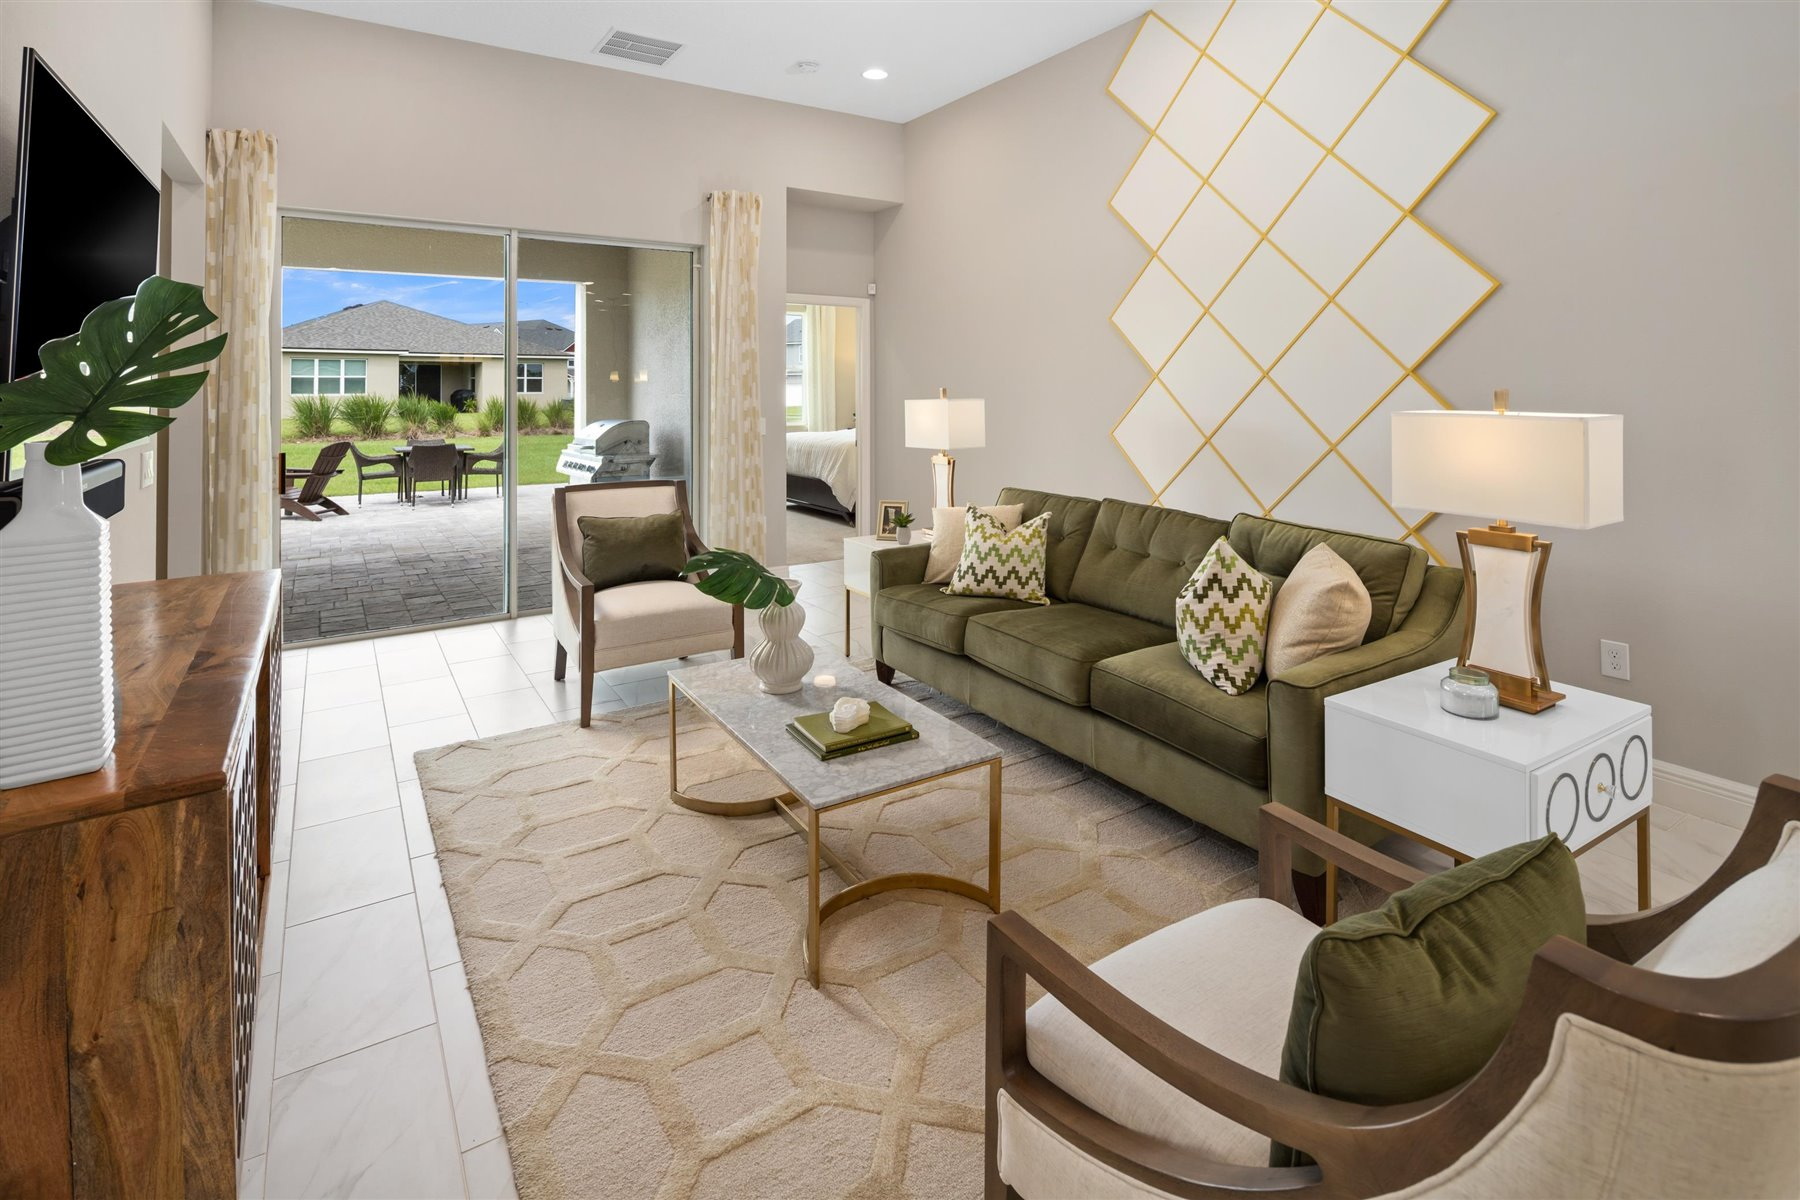 Avondale Plan Greatroom at Tohoqua in Kissimmee Florida by Mattamy Homes